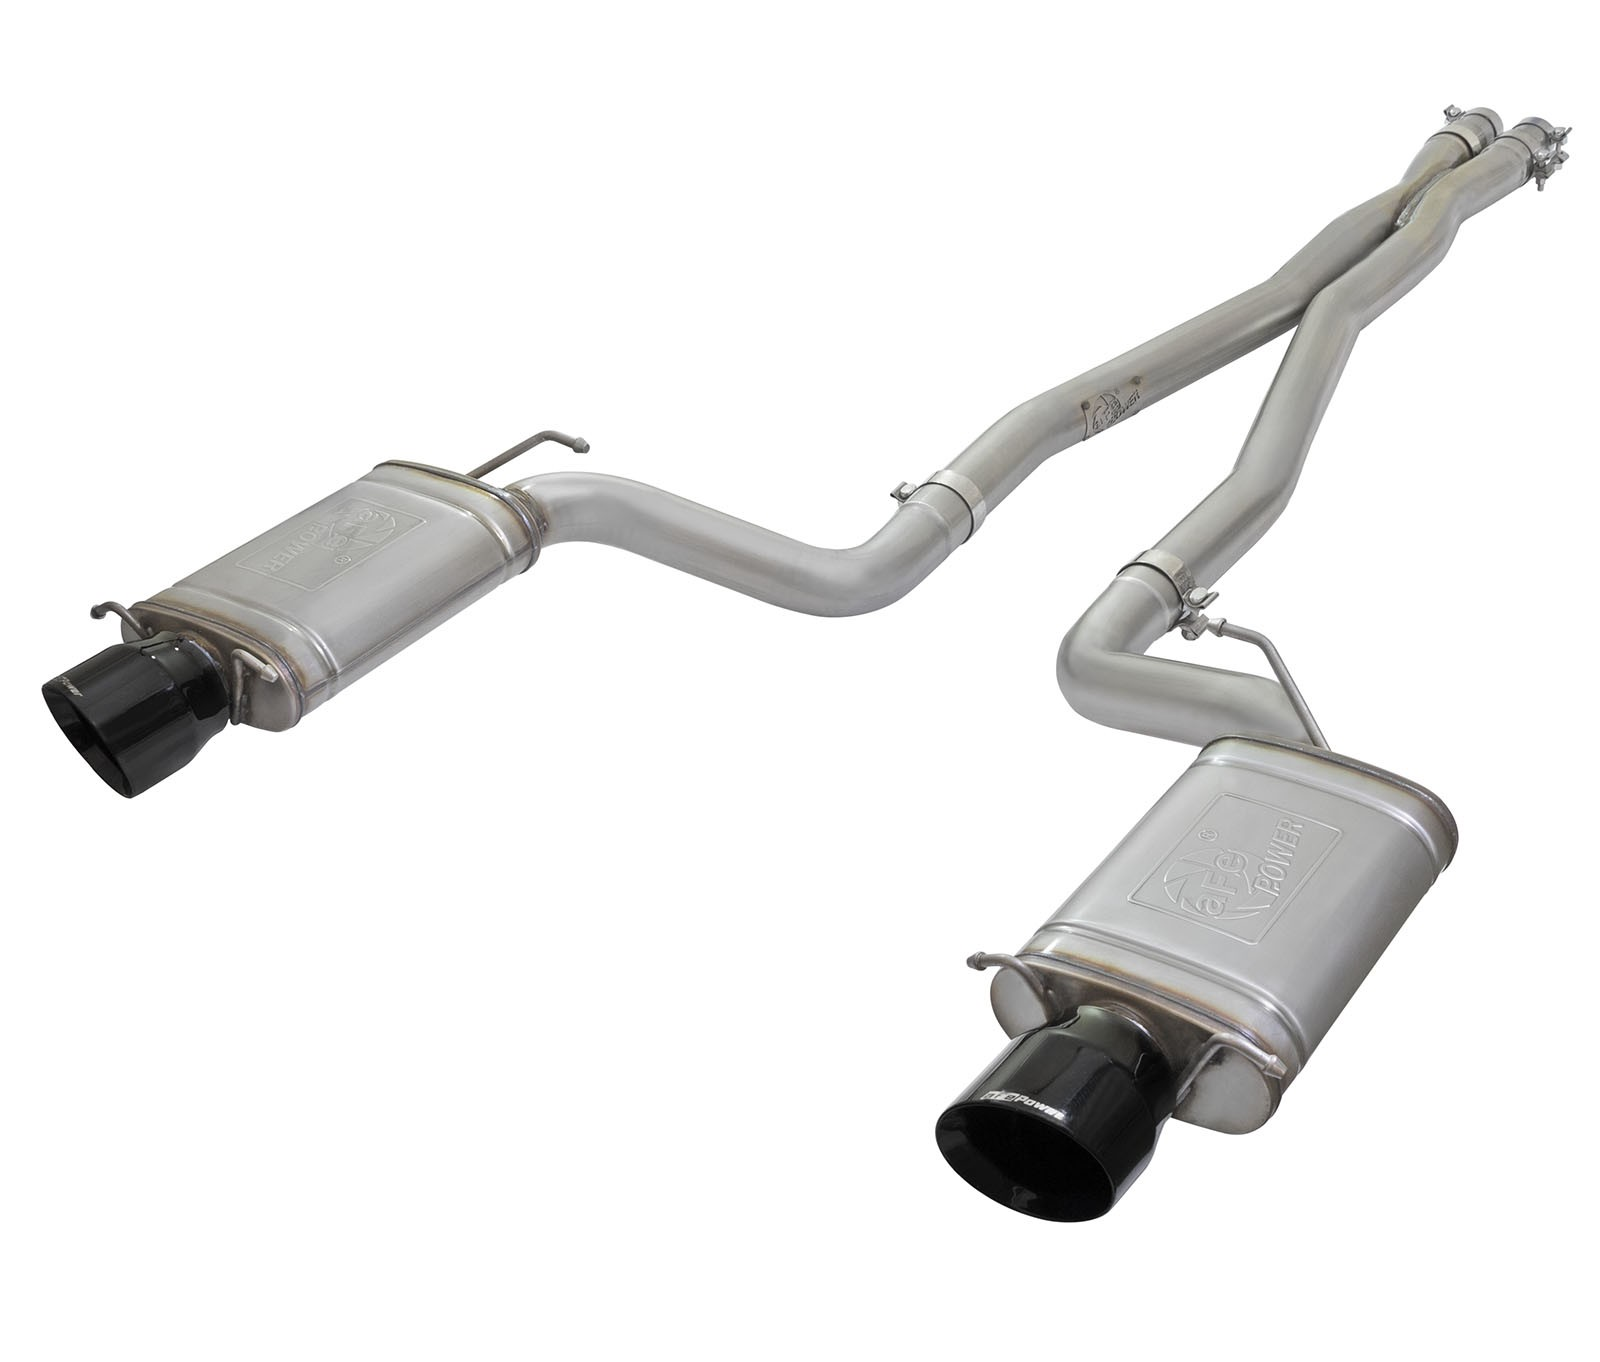 "MACH Force-Xp 3"" 304 Stainless Steel Cat-Back Exhaust System"